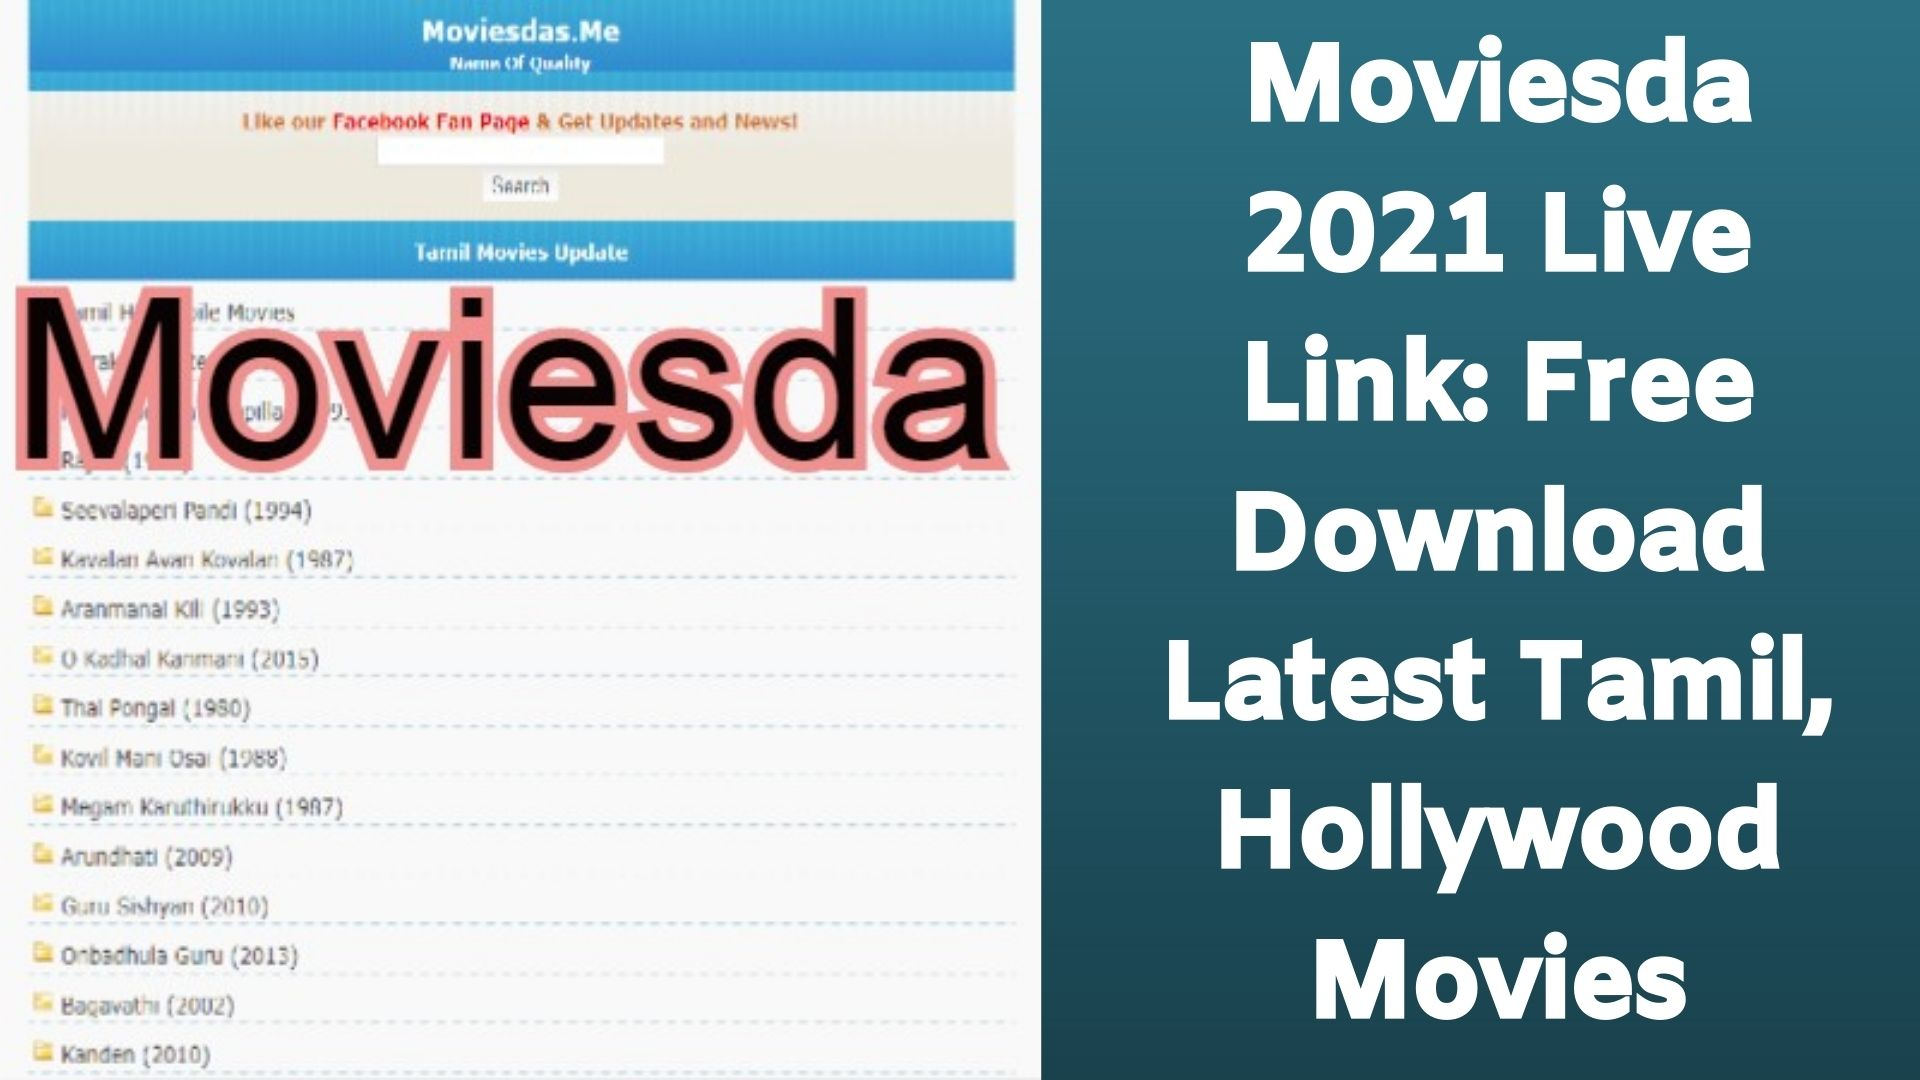 Moviesda 2021 Live Link: Free Download Latest Tamil, Hollywood Movies